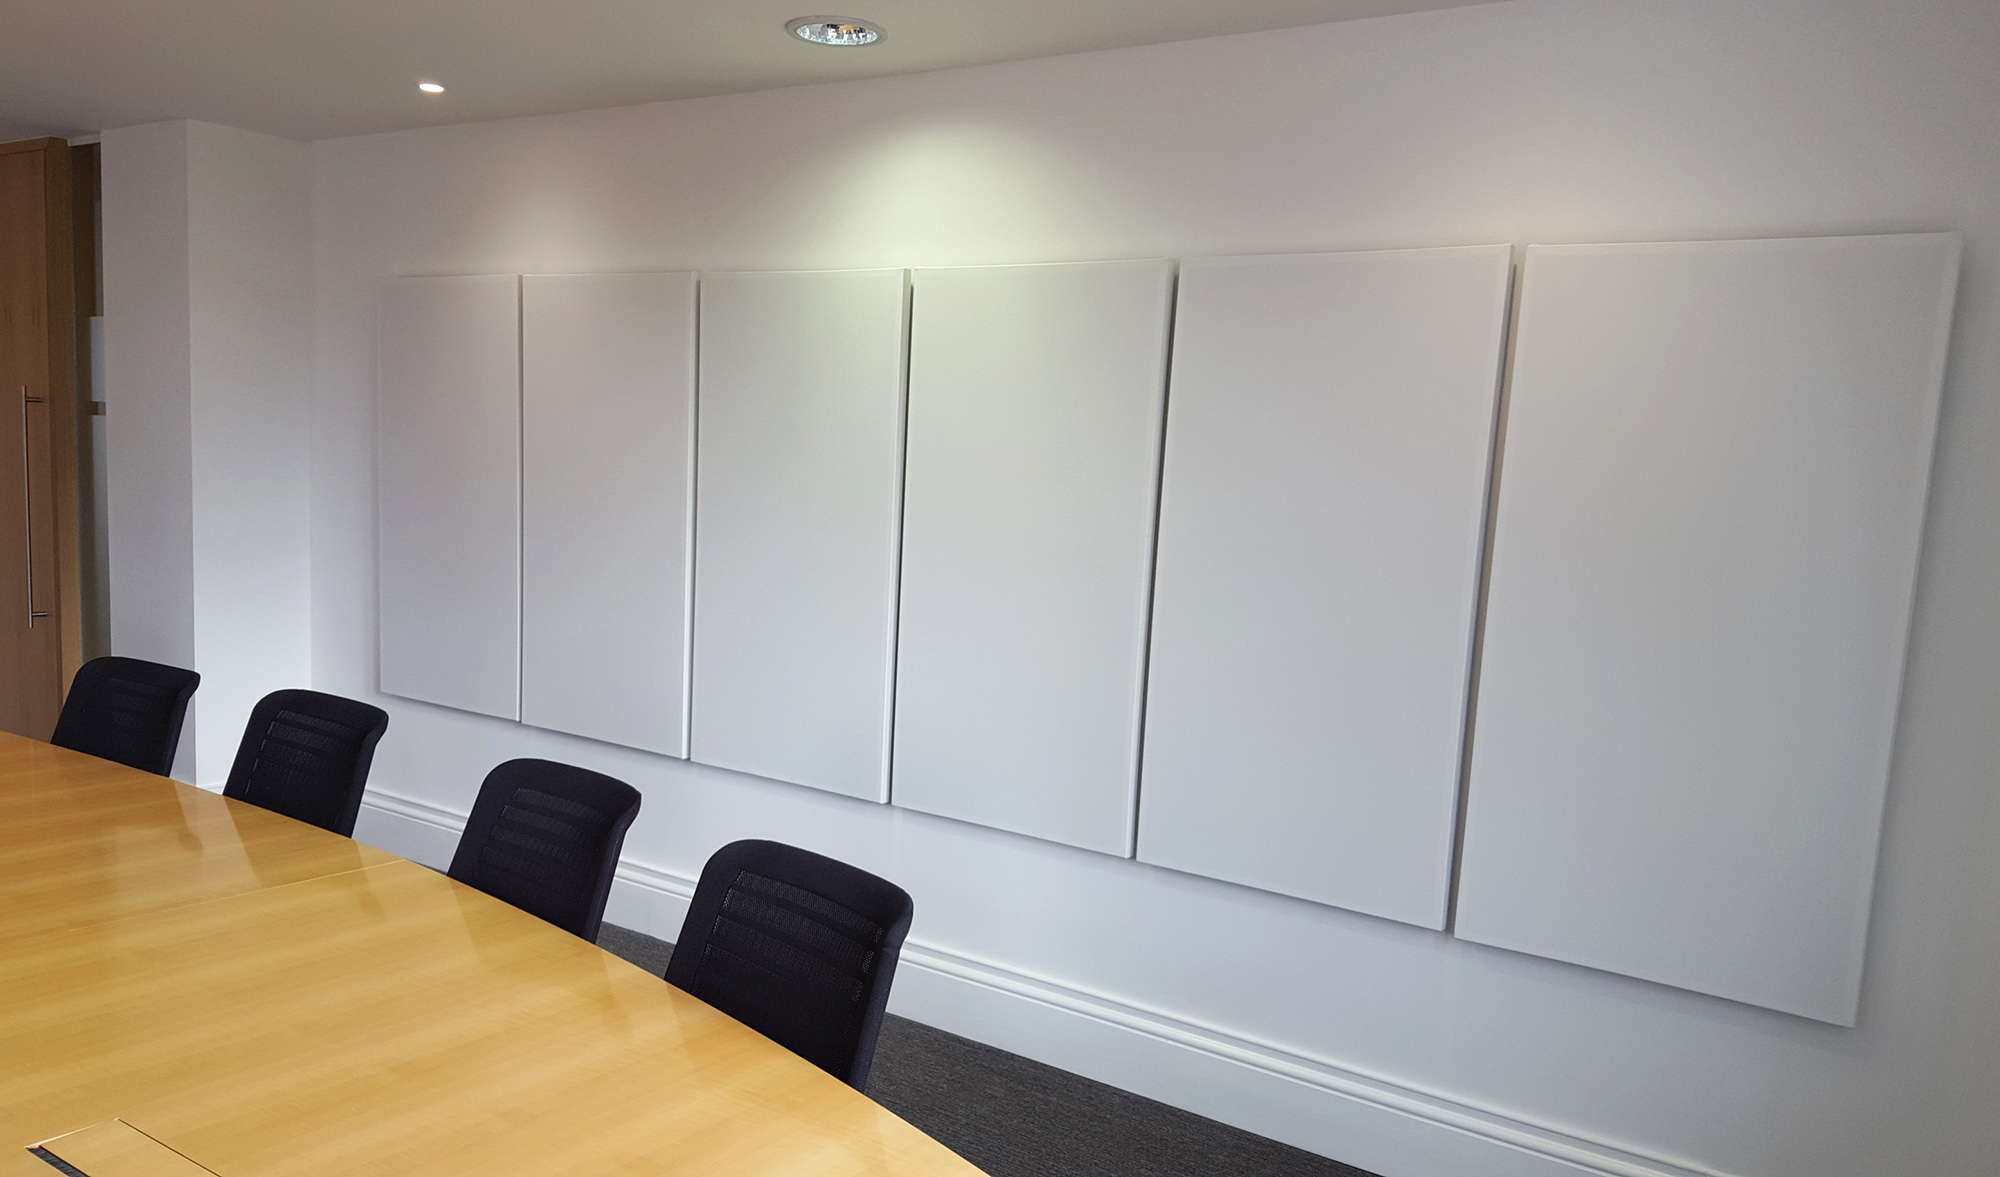 Meeting Room Acoustic Panels